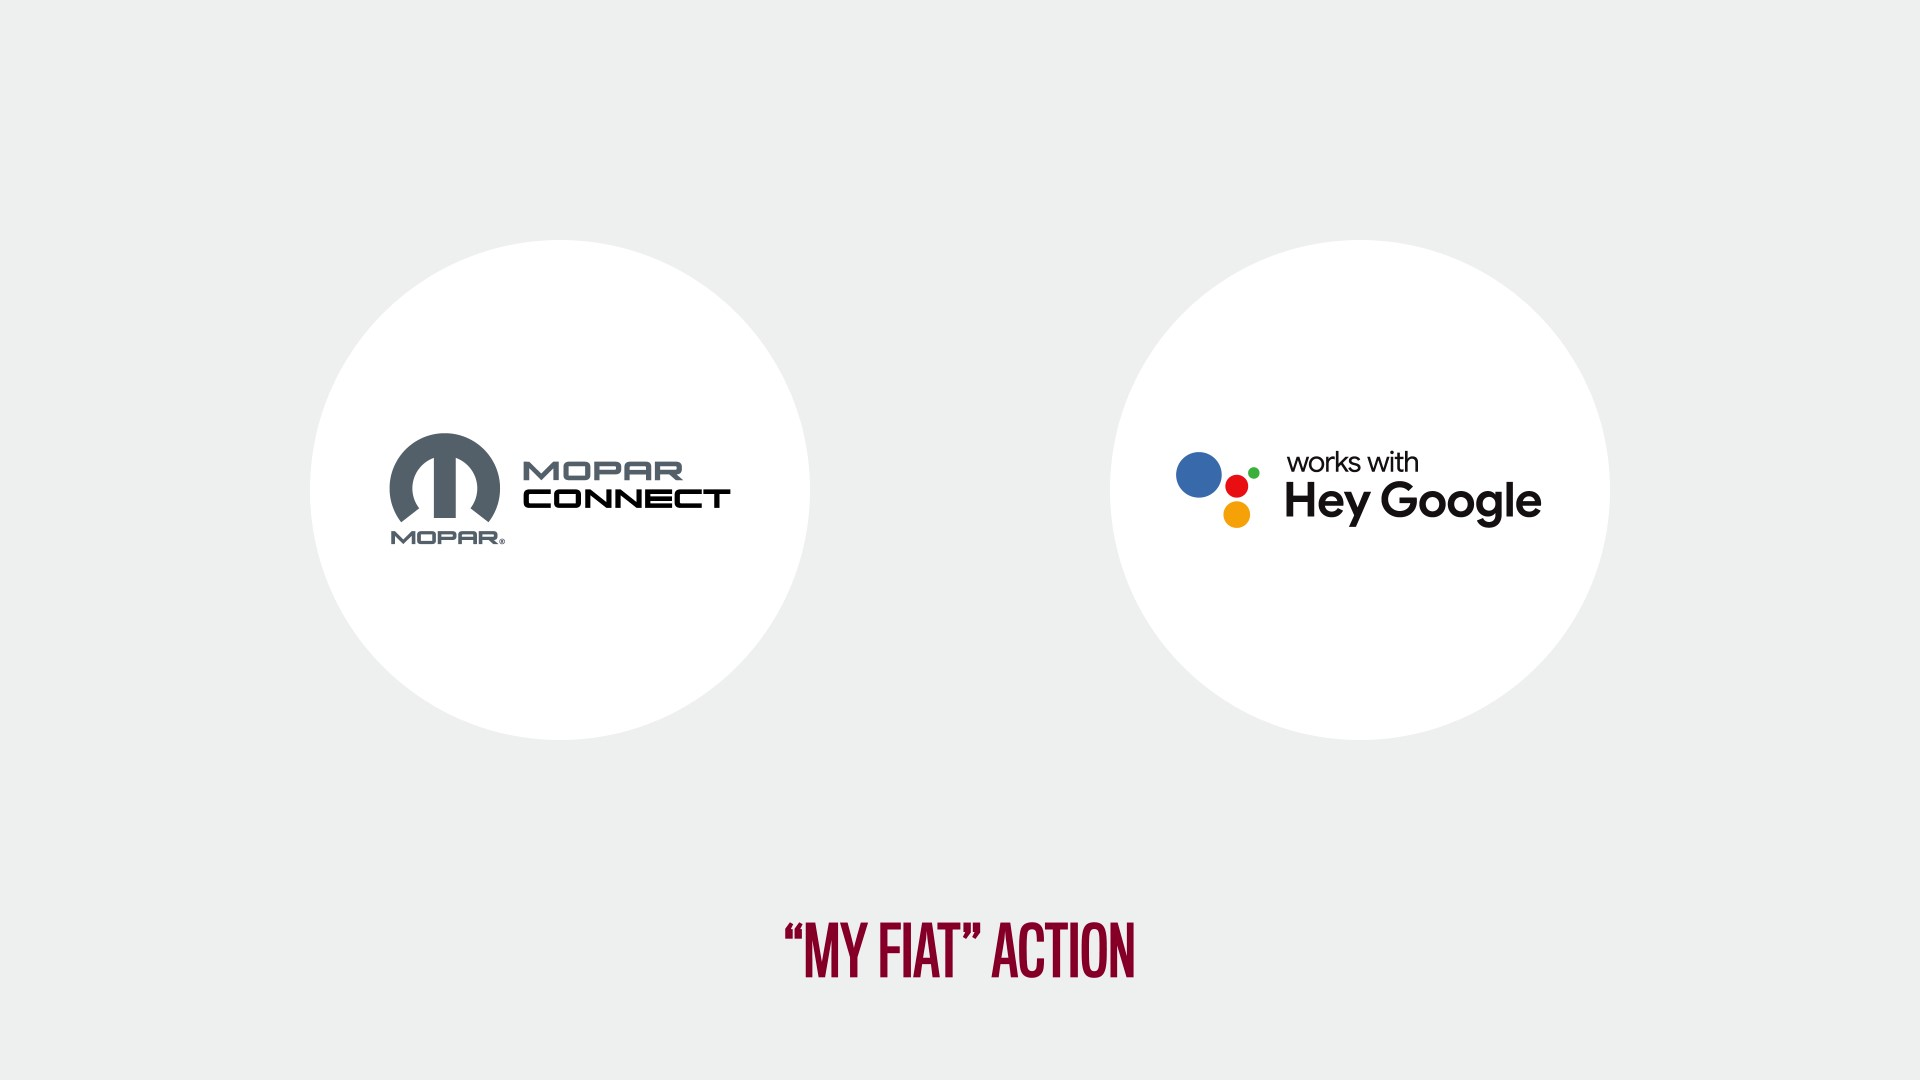 Nuova Famiglia 500 Hey Google - Mopar Connect integration with Google Assistant_Videoclip